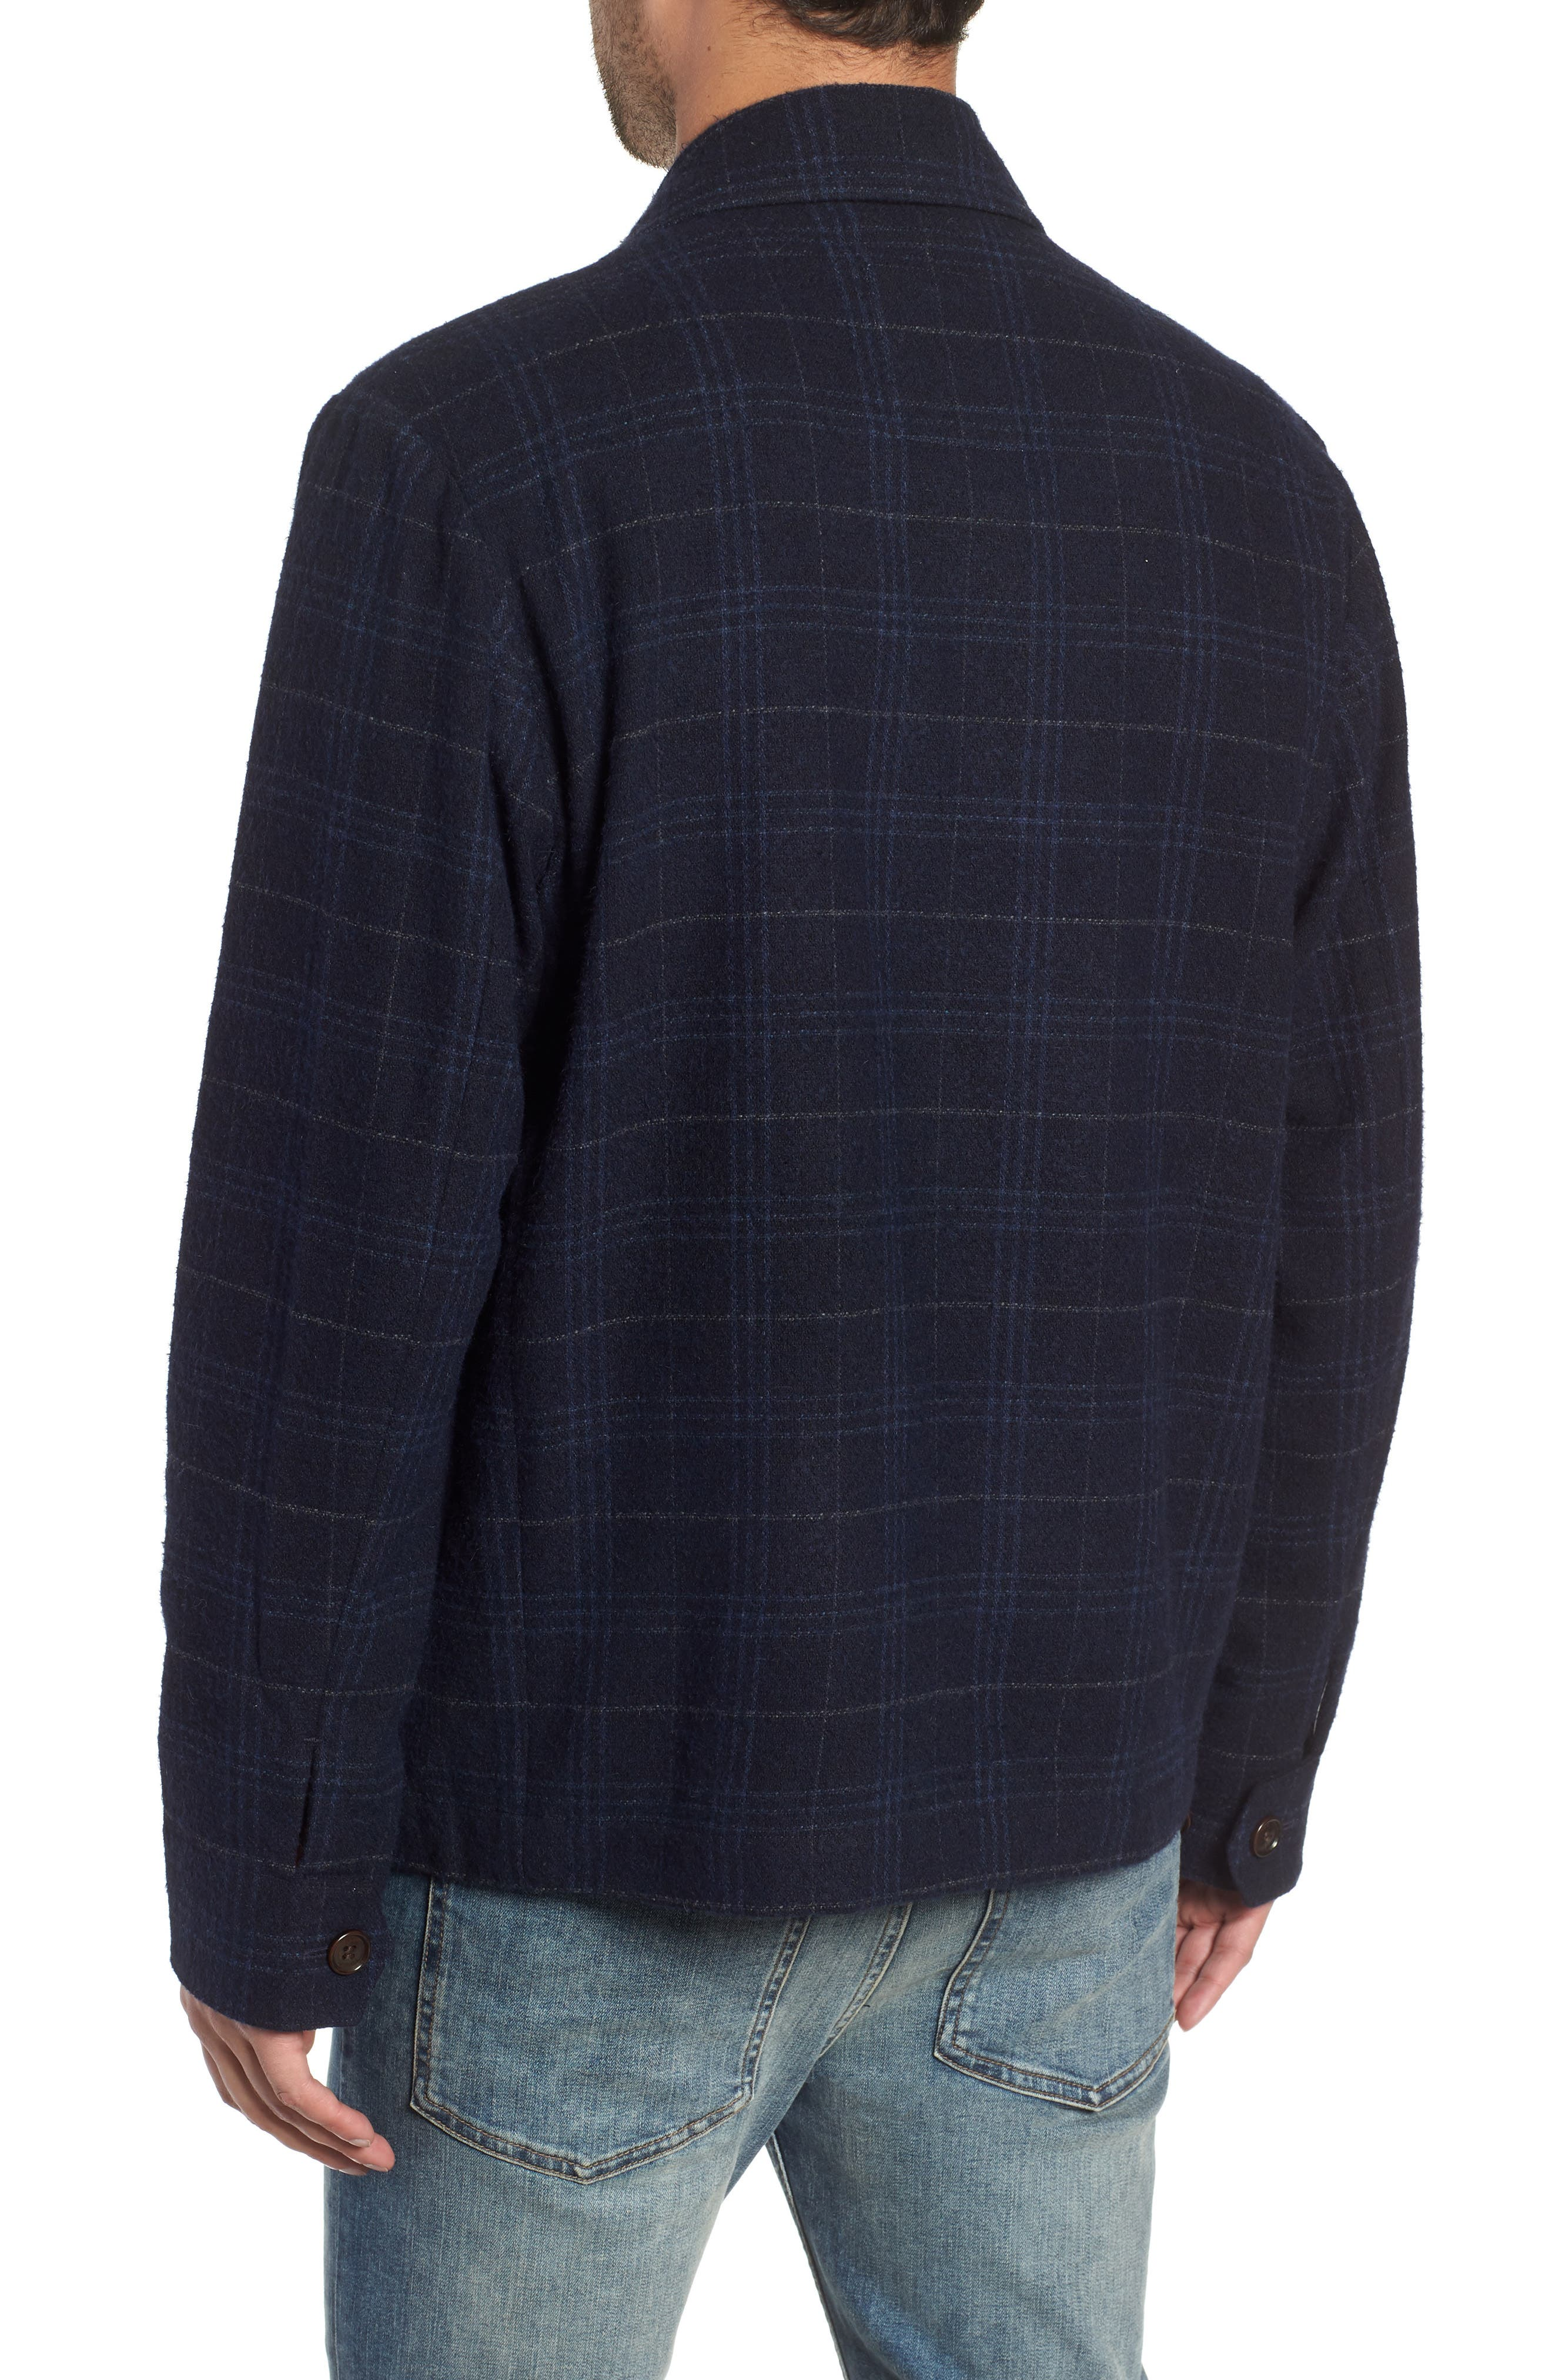 WAX LONDON,                             Witham Coach's Jacket,                             Alternate thumbnail 2, color,                             NAVY CHECK